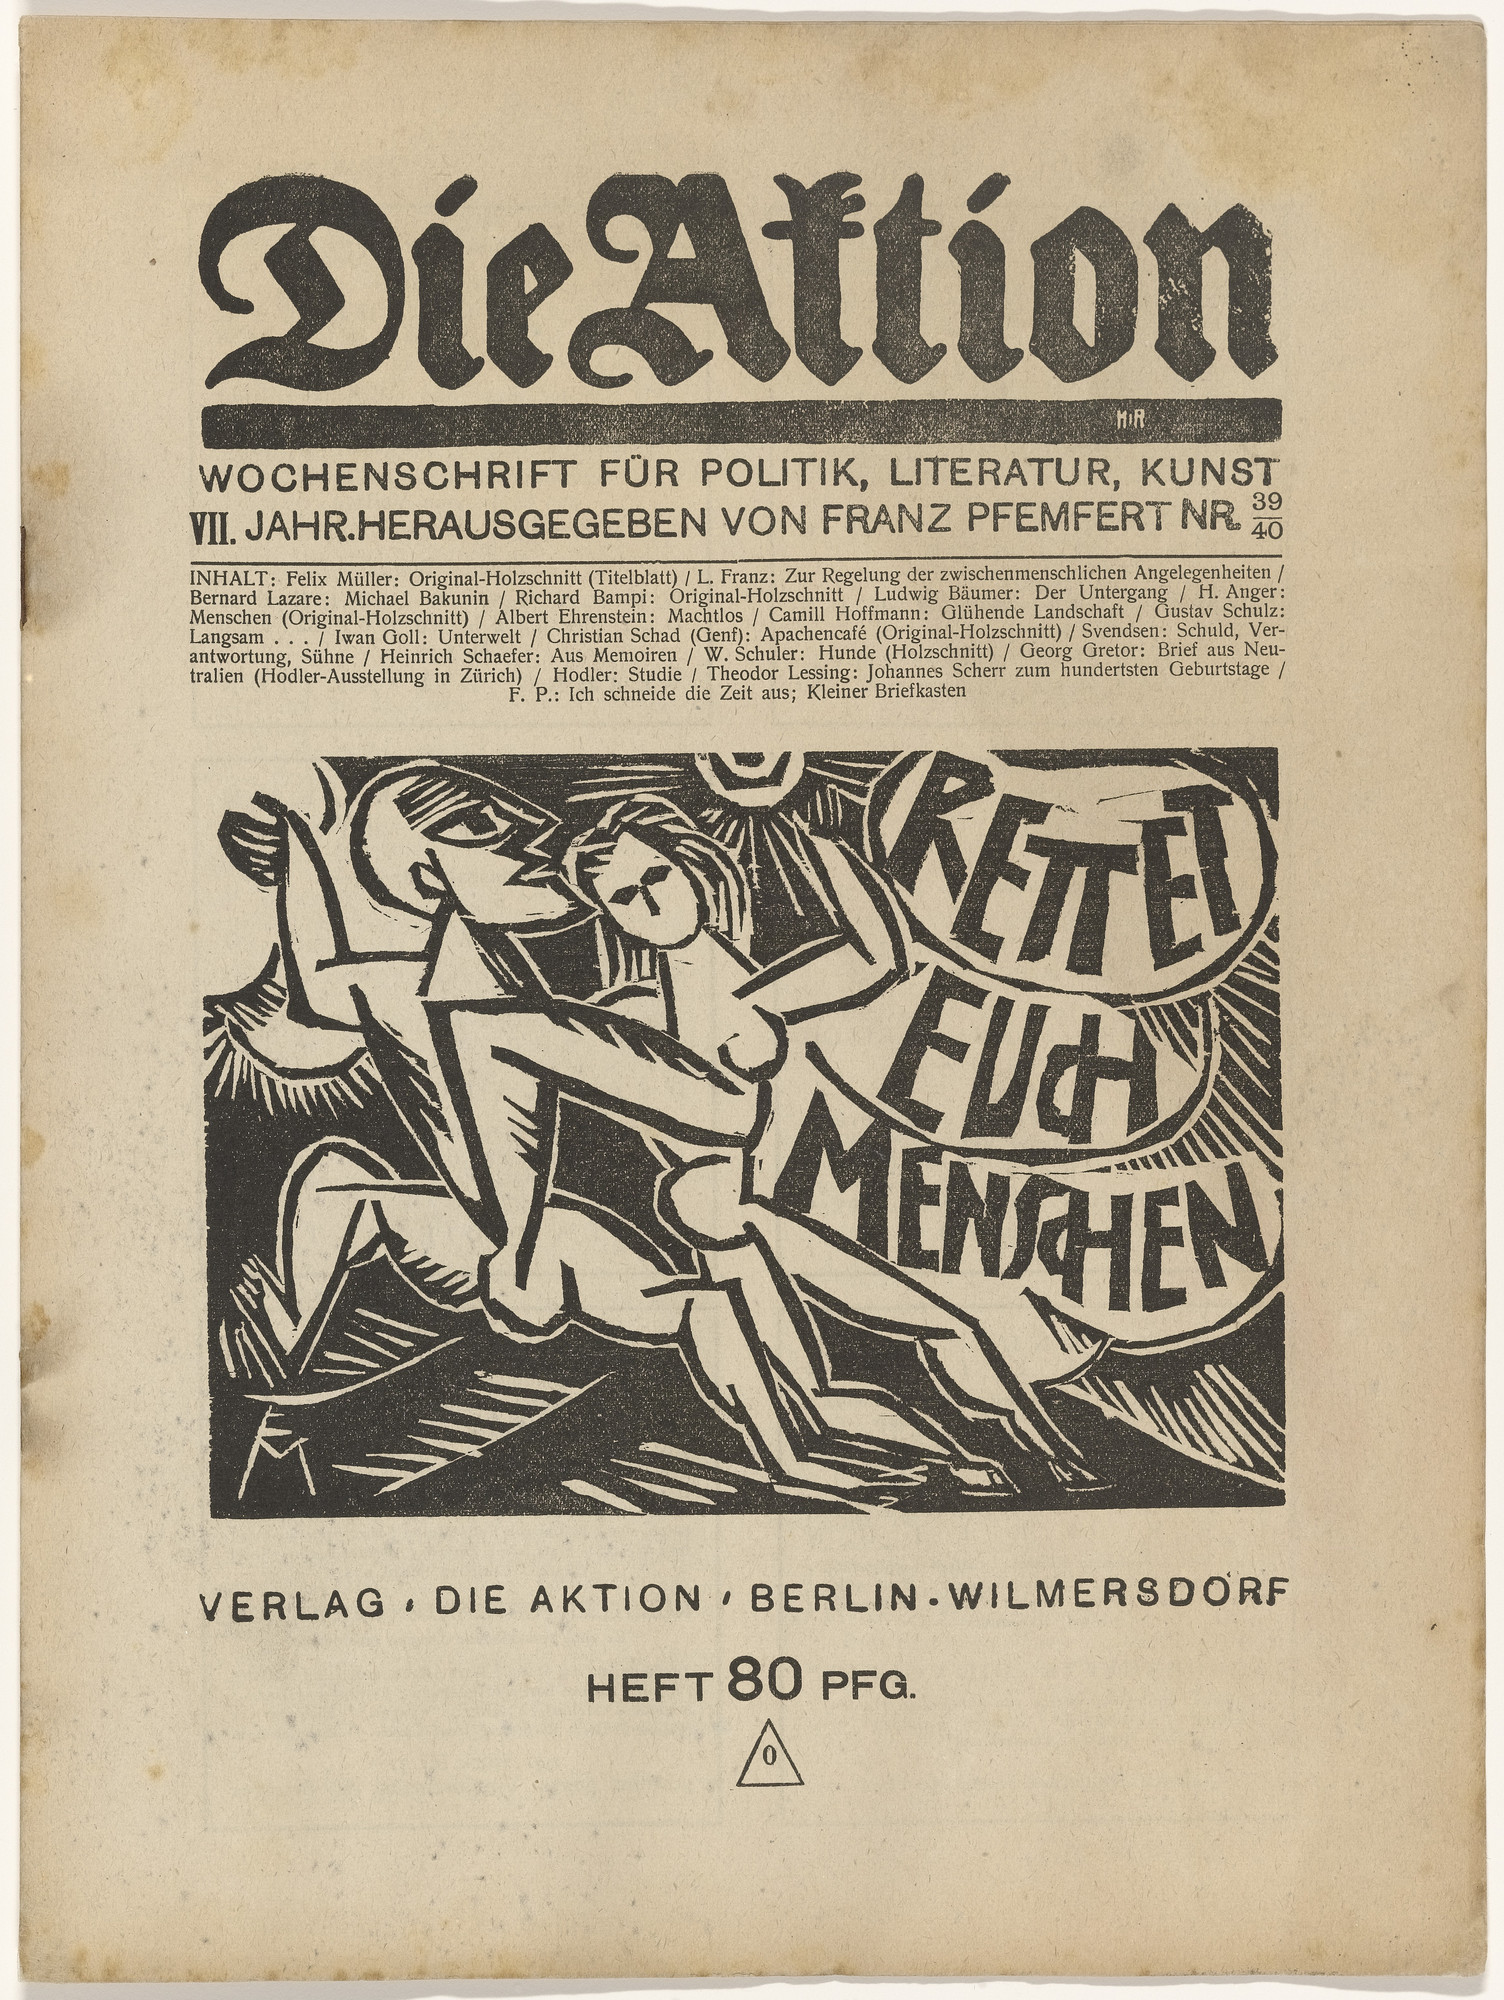 Various Artists. Die Aktion (vol. 2, no. 3-vol. 11, no. 11/12). 1912-21